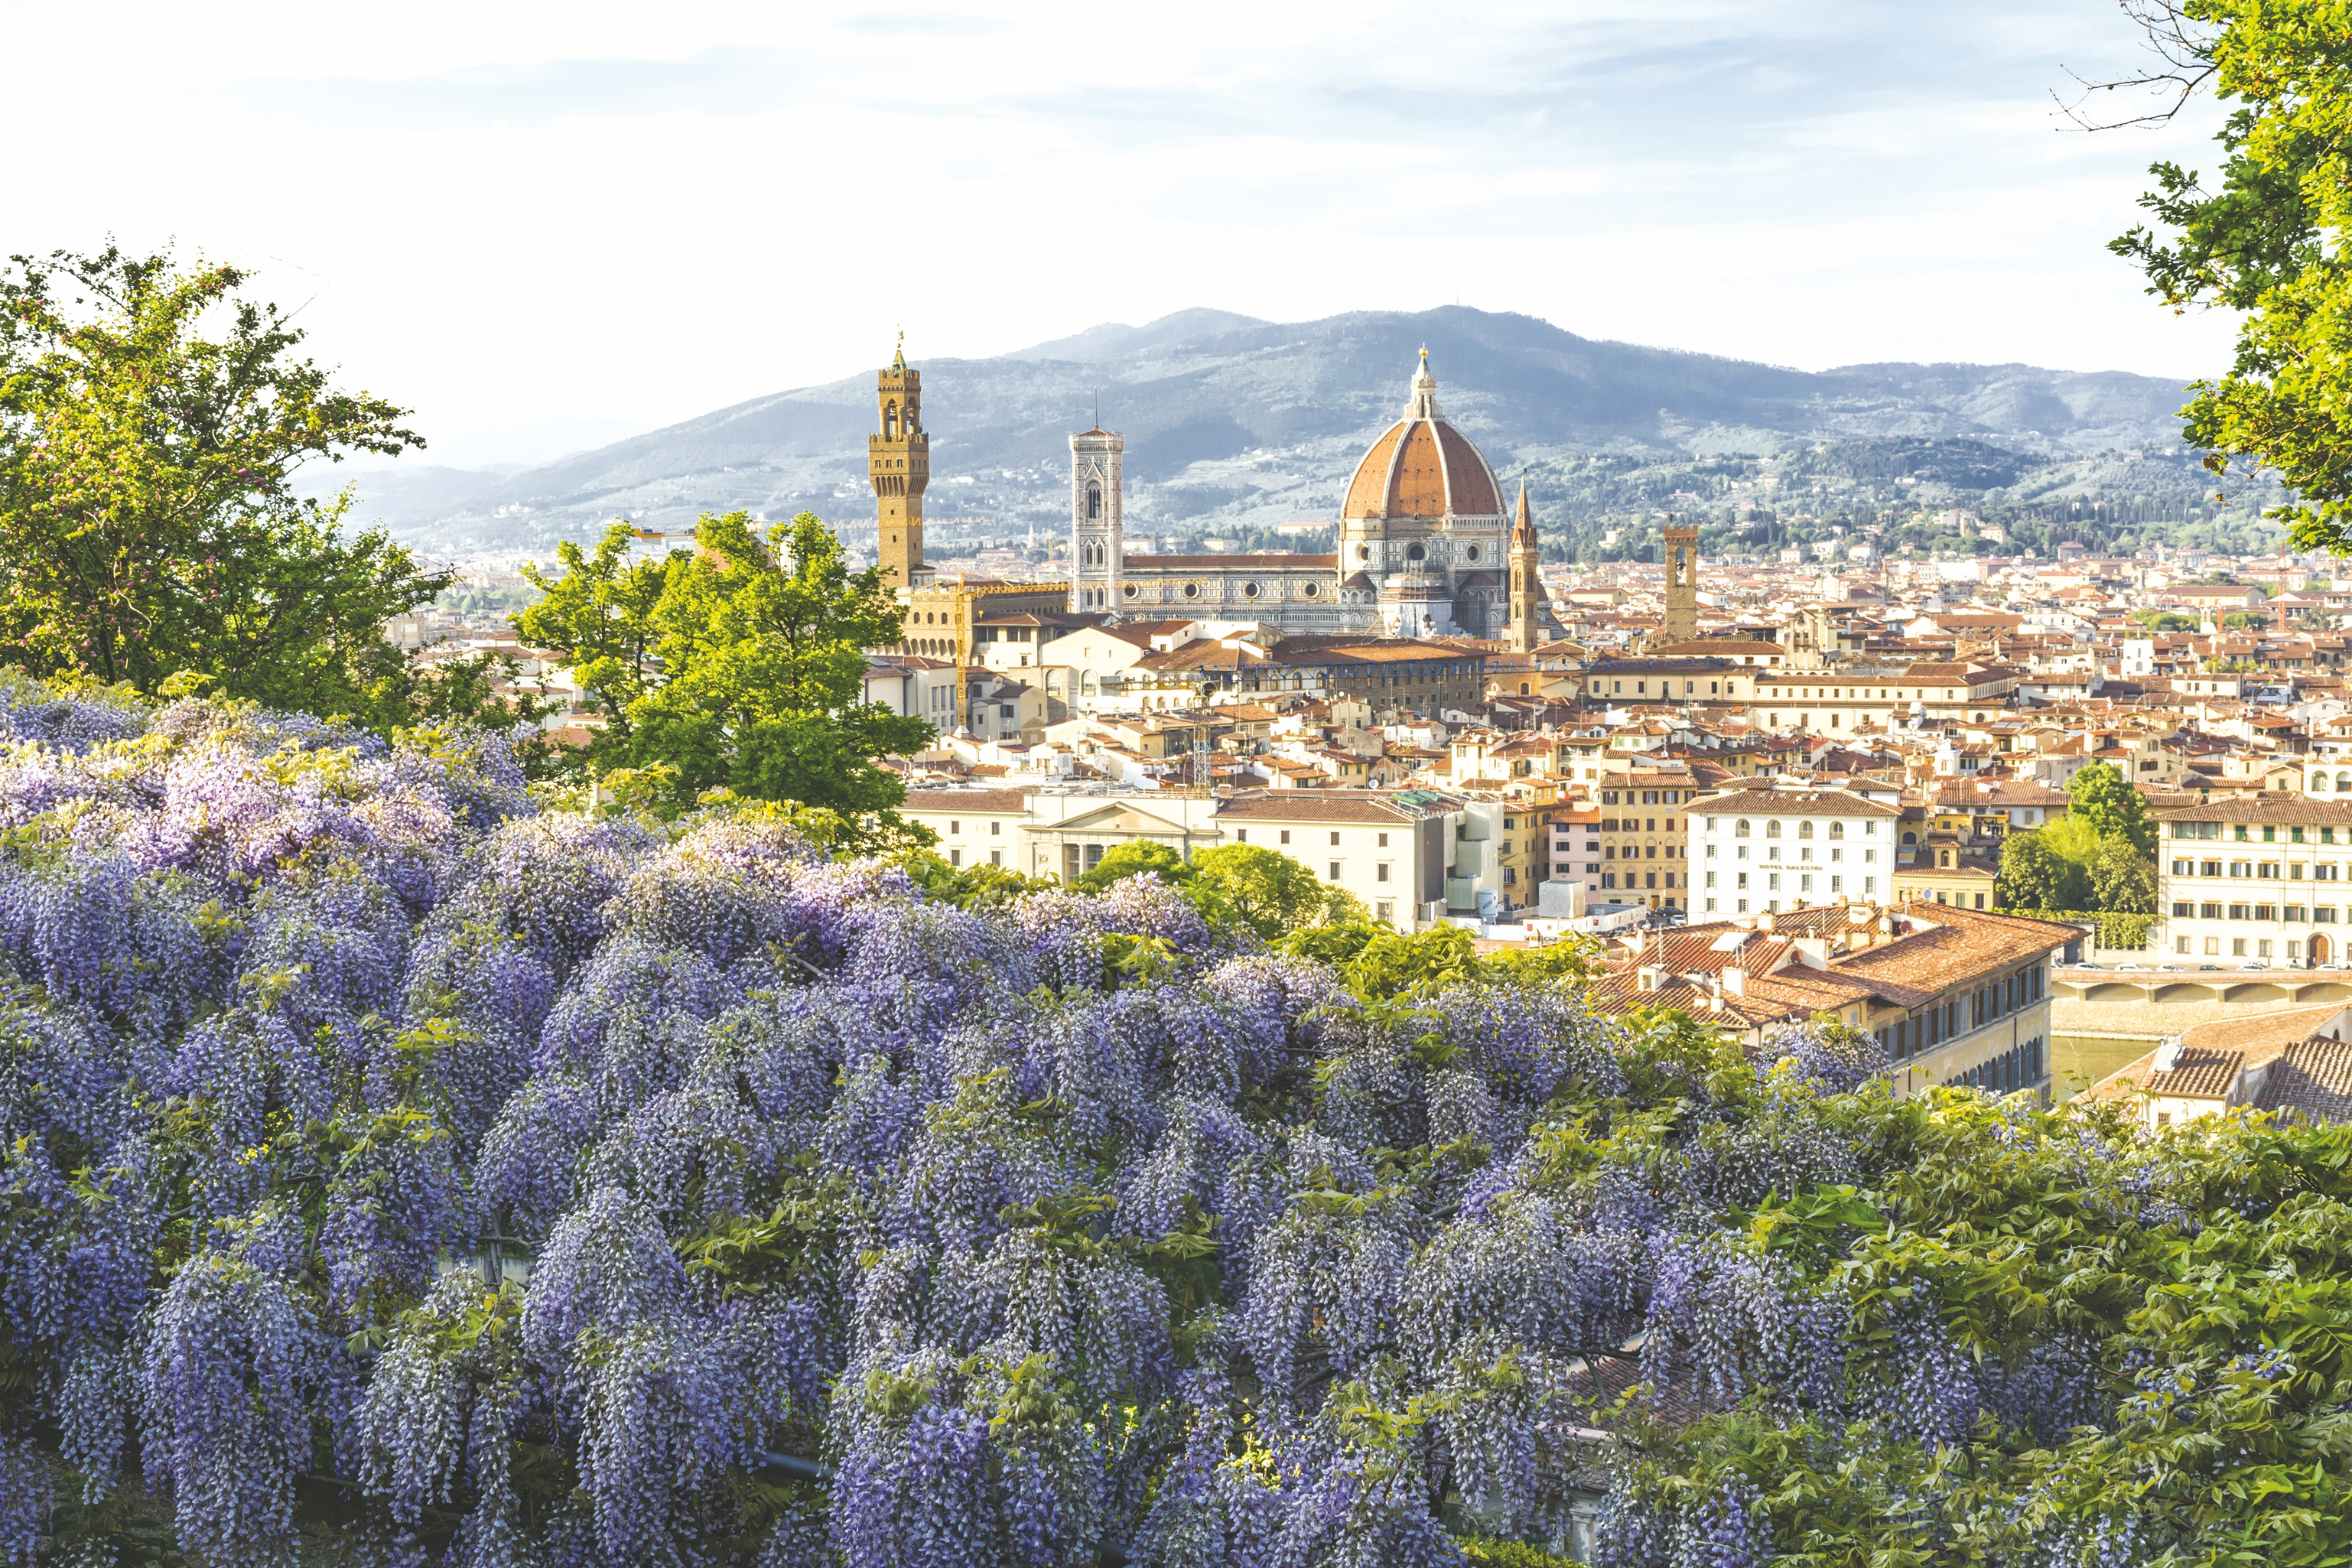 The view of the Duomo from the Bardini Gardens in Florence